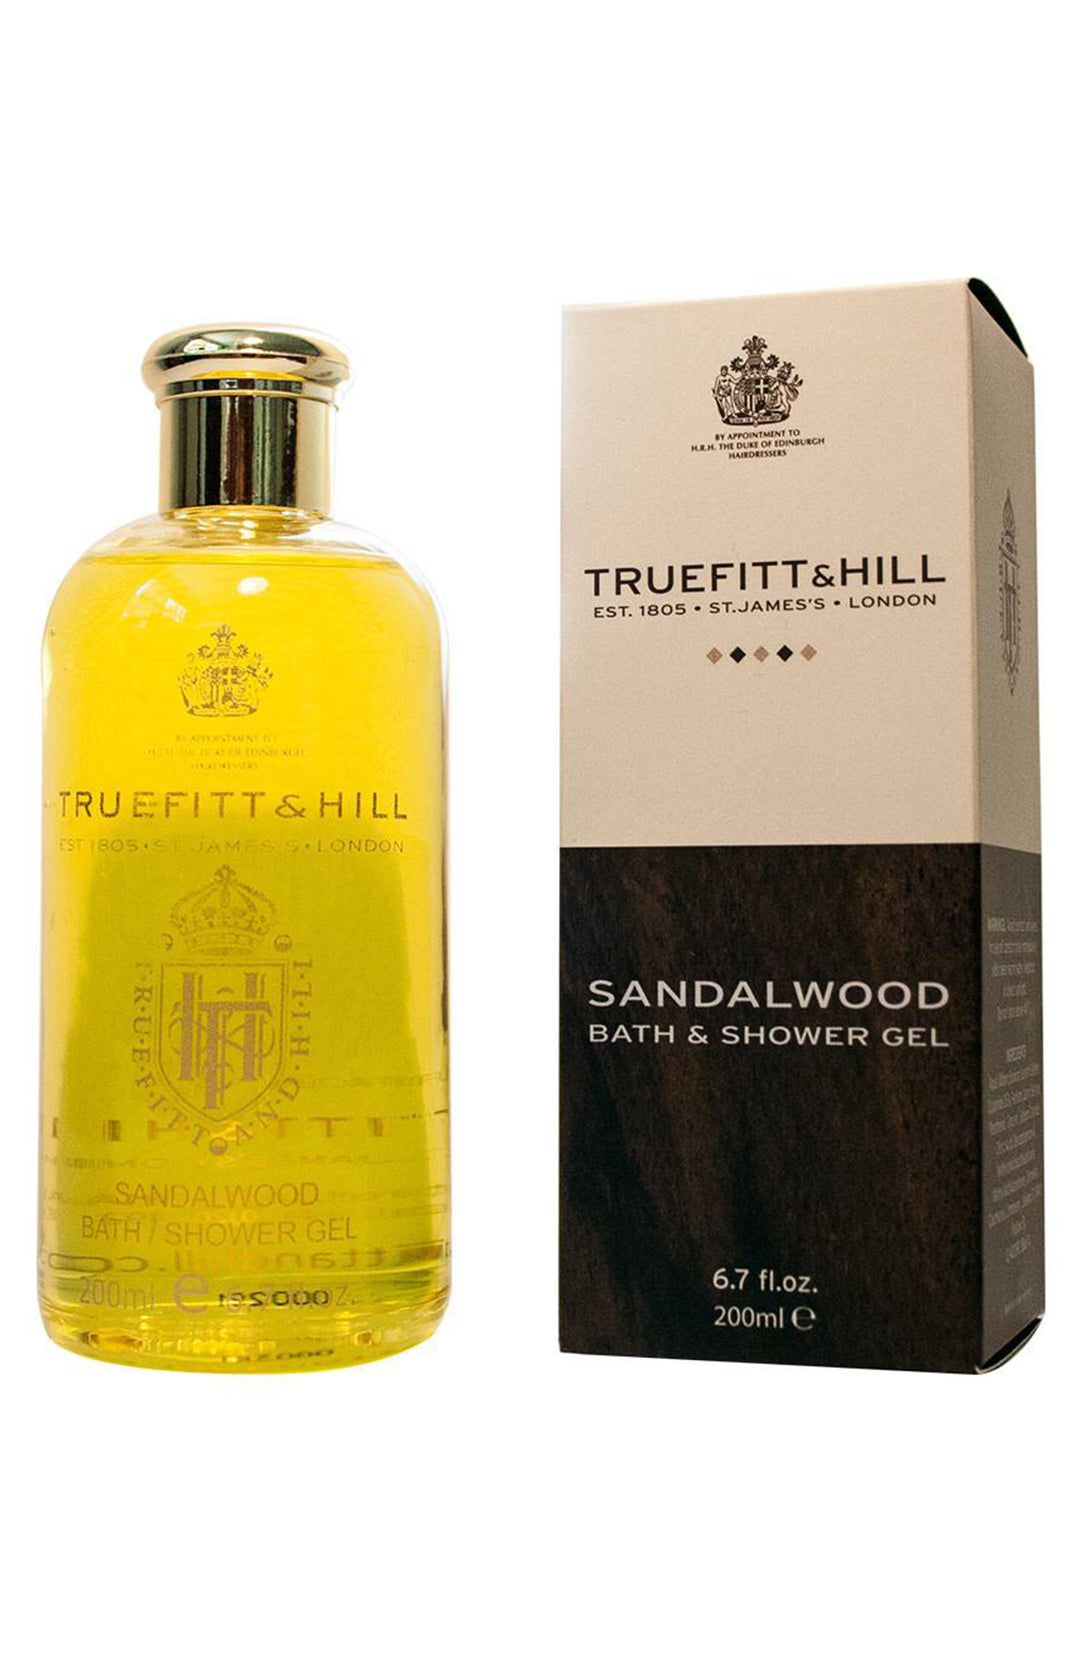 SANDALWOOD BATH & SHOWER GEL